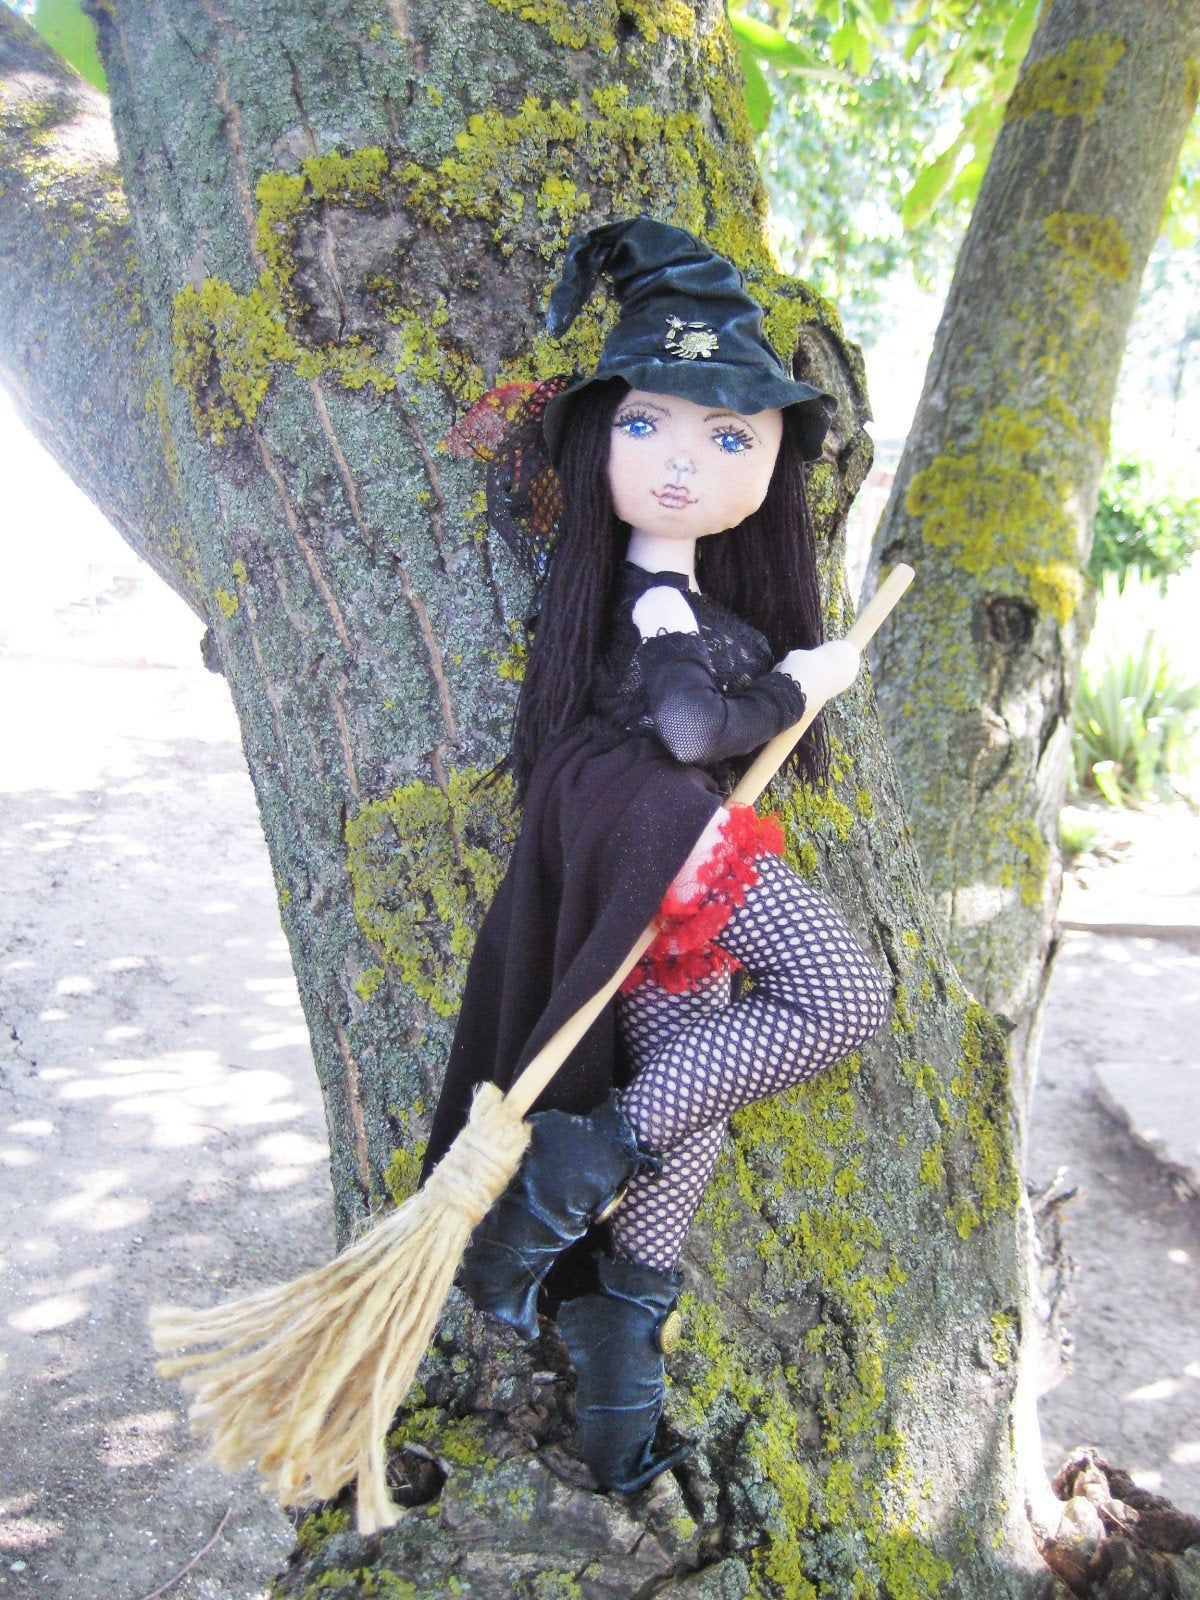 Witch Halloween cloth doll, Gothic sexy doll, Halloween home decor, art doll interior, witch broom doll, textile doll in black, magic doll